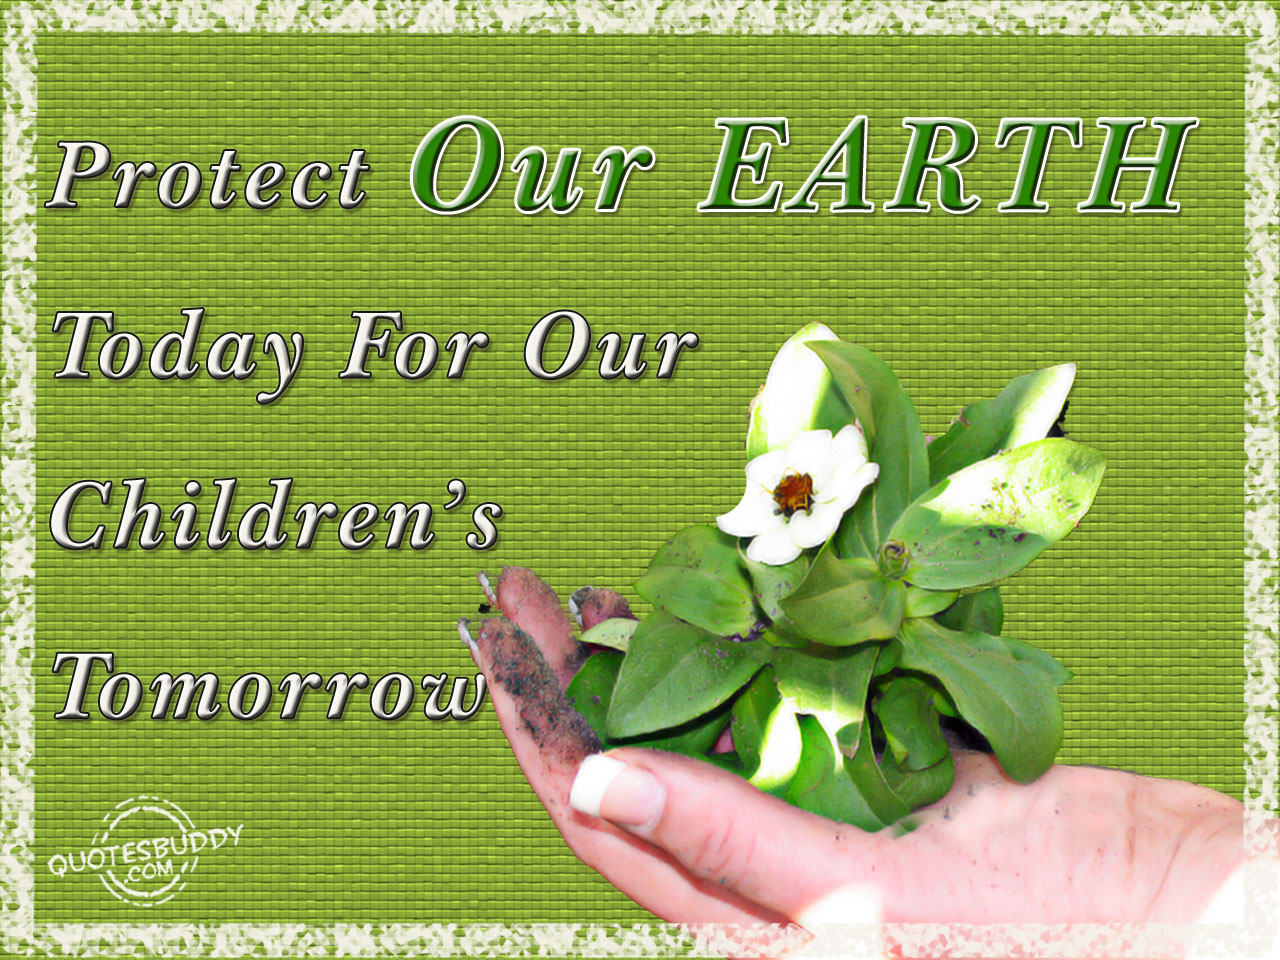 Trees For Tomorrow Natural Resources